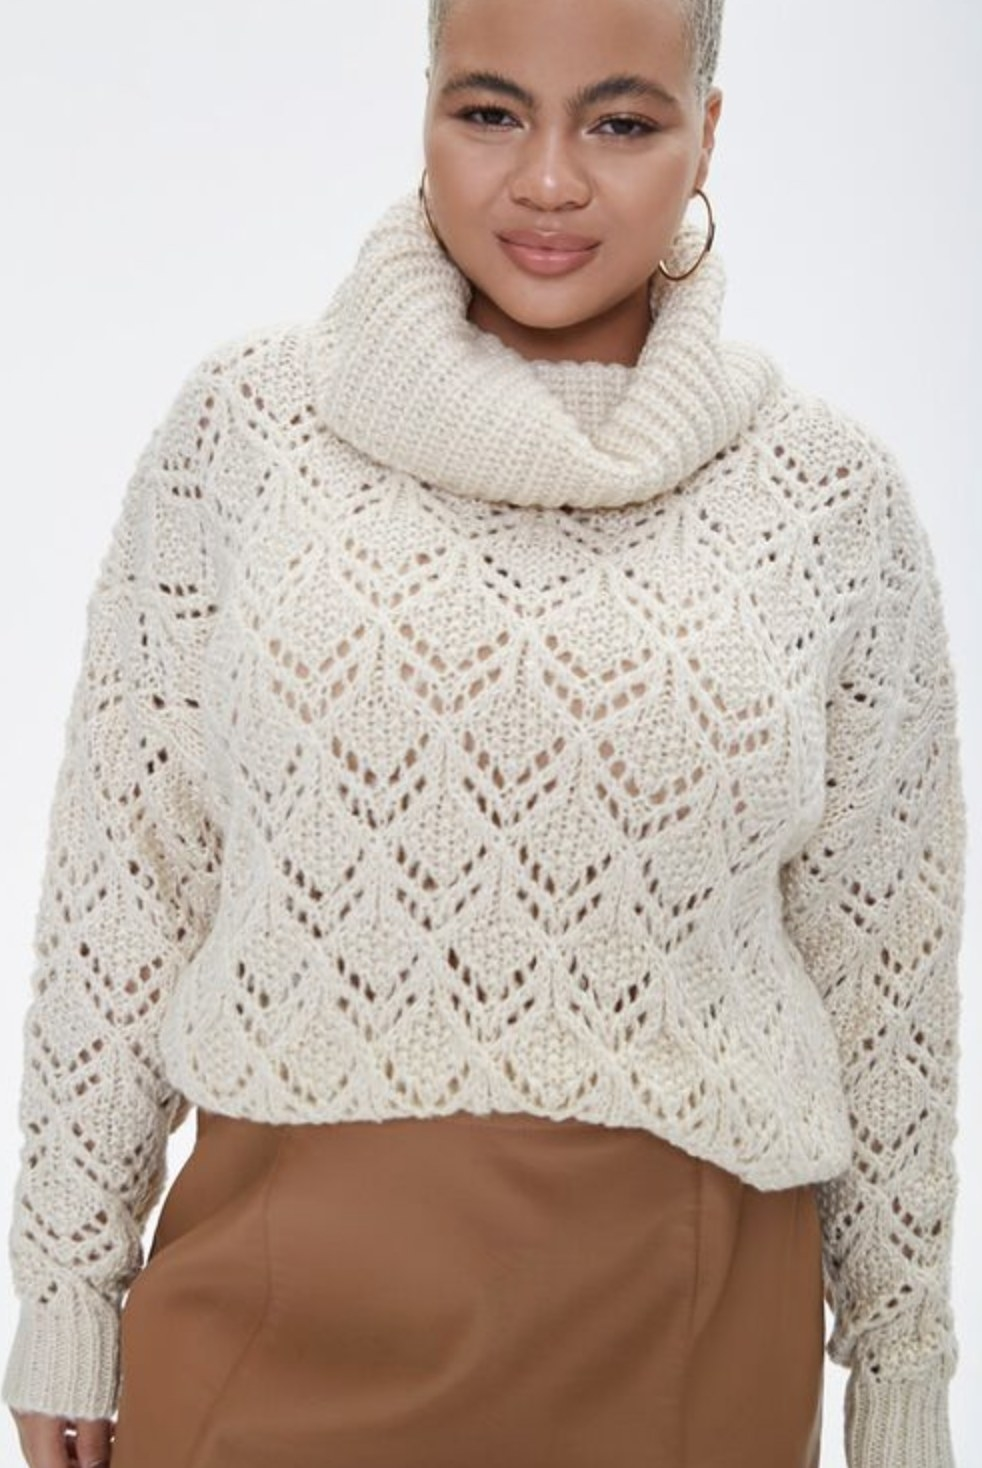 Model is wearing a white turtleneck sweater and a tan skirt